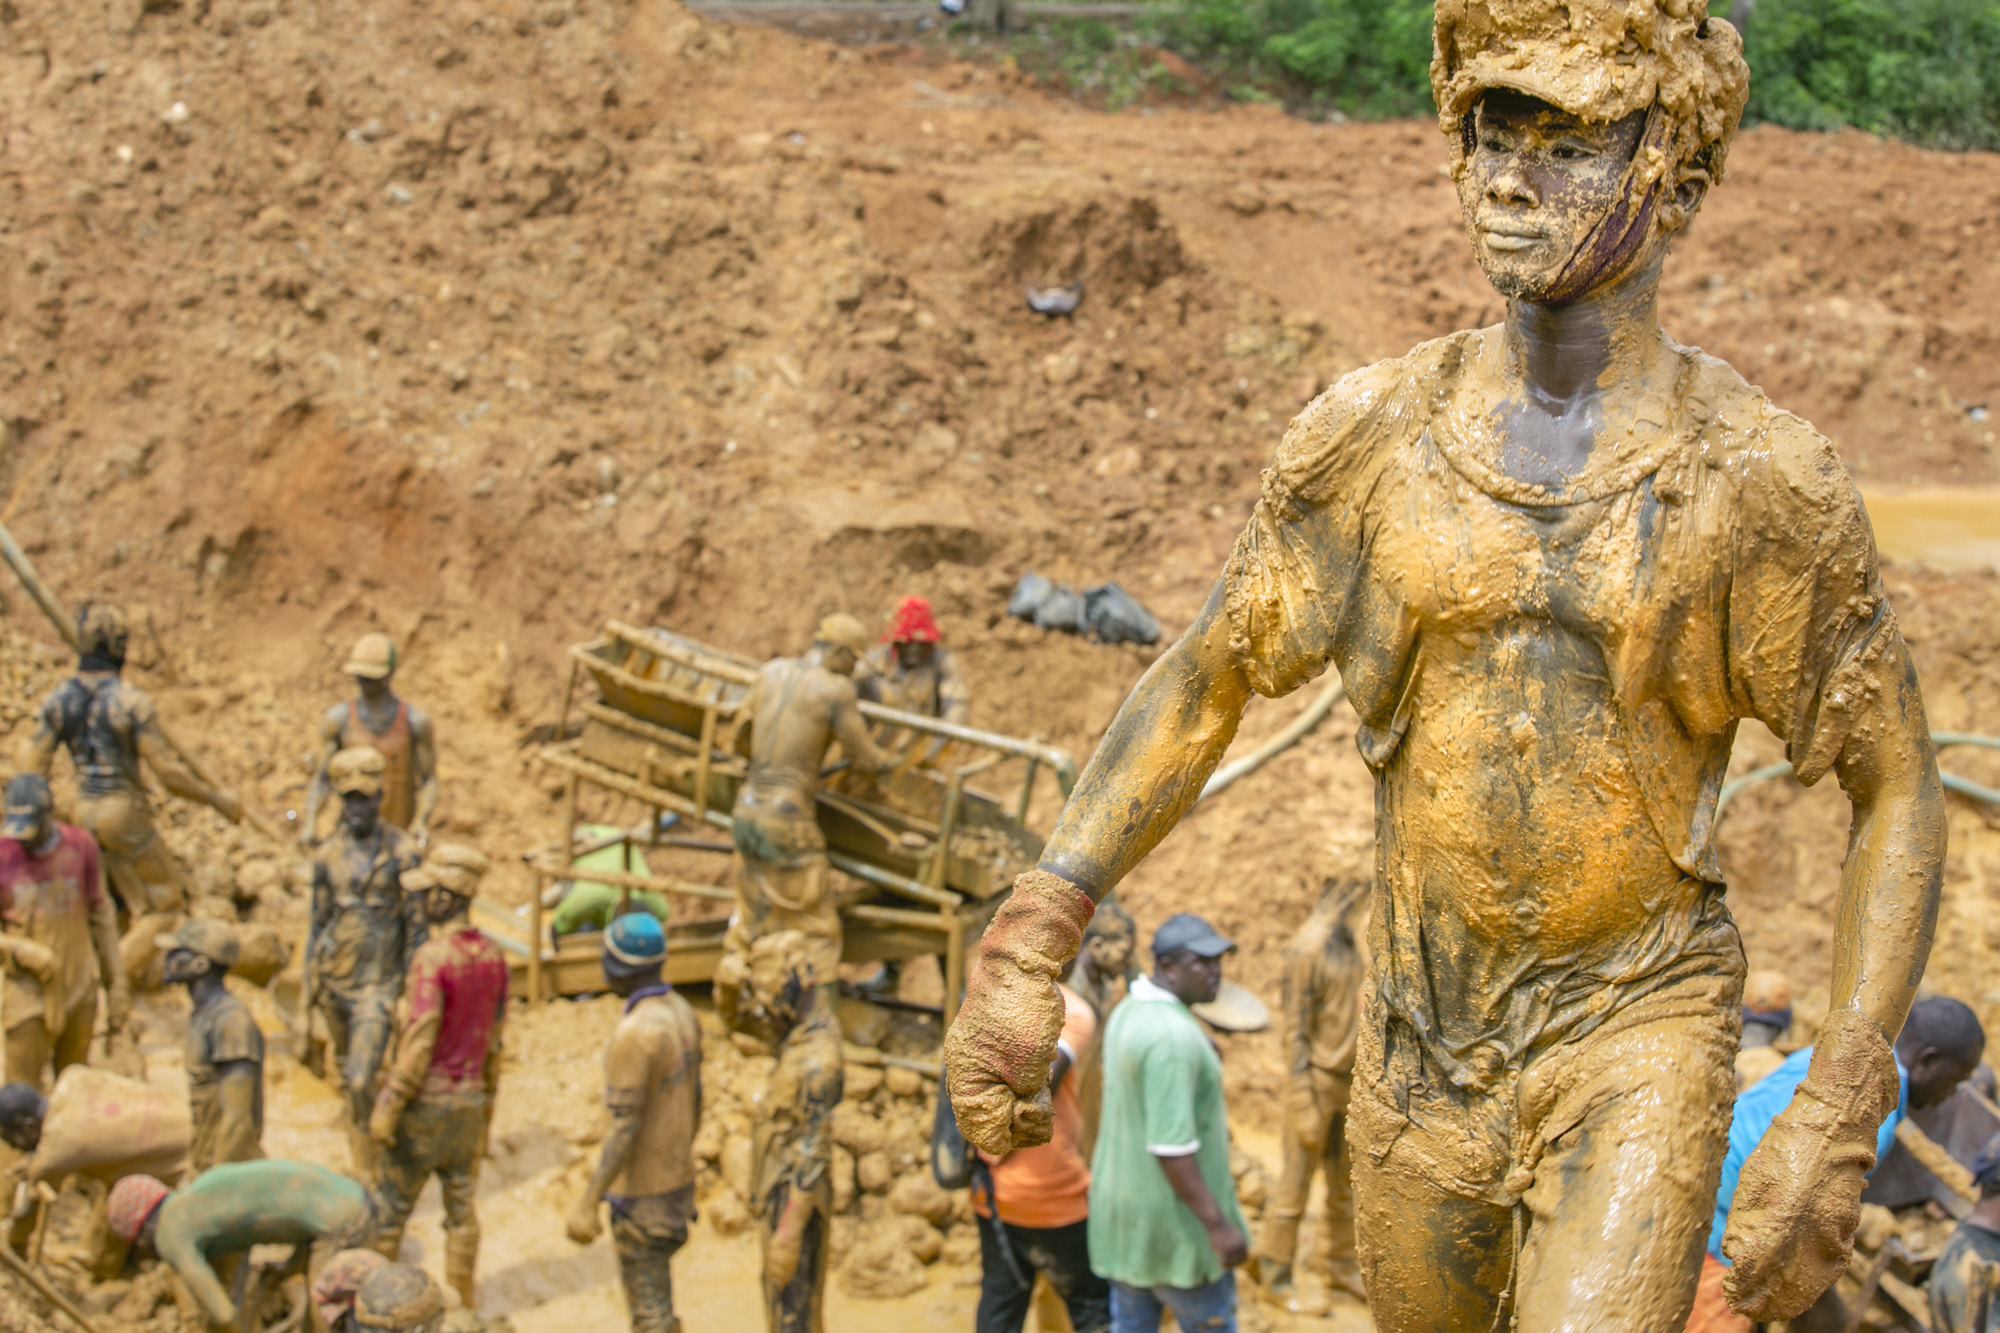 A young miner emerges from a pit covered in mud. His job is to carry buckets of placer deposit (which contains the gold ore) from the sifting machine out of the pit to be washed and mixed with mercury to extract the gold.